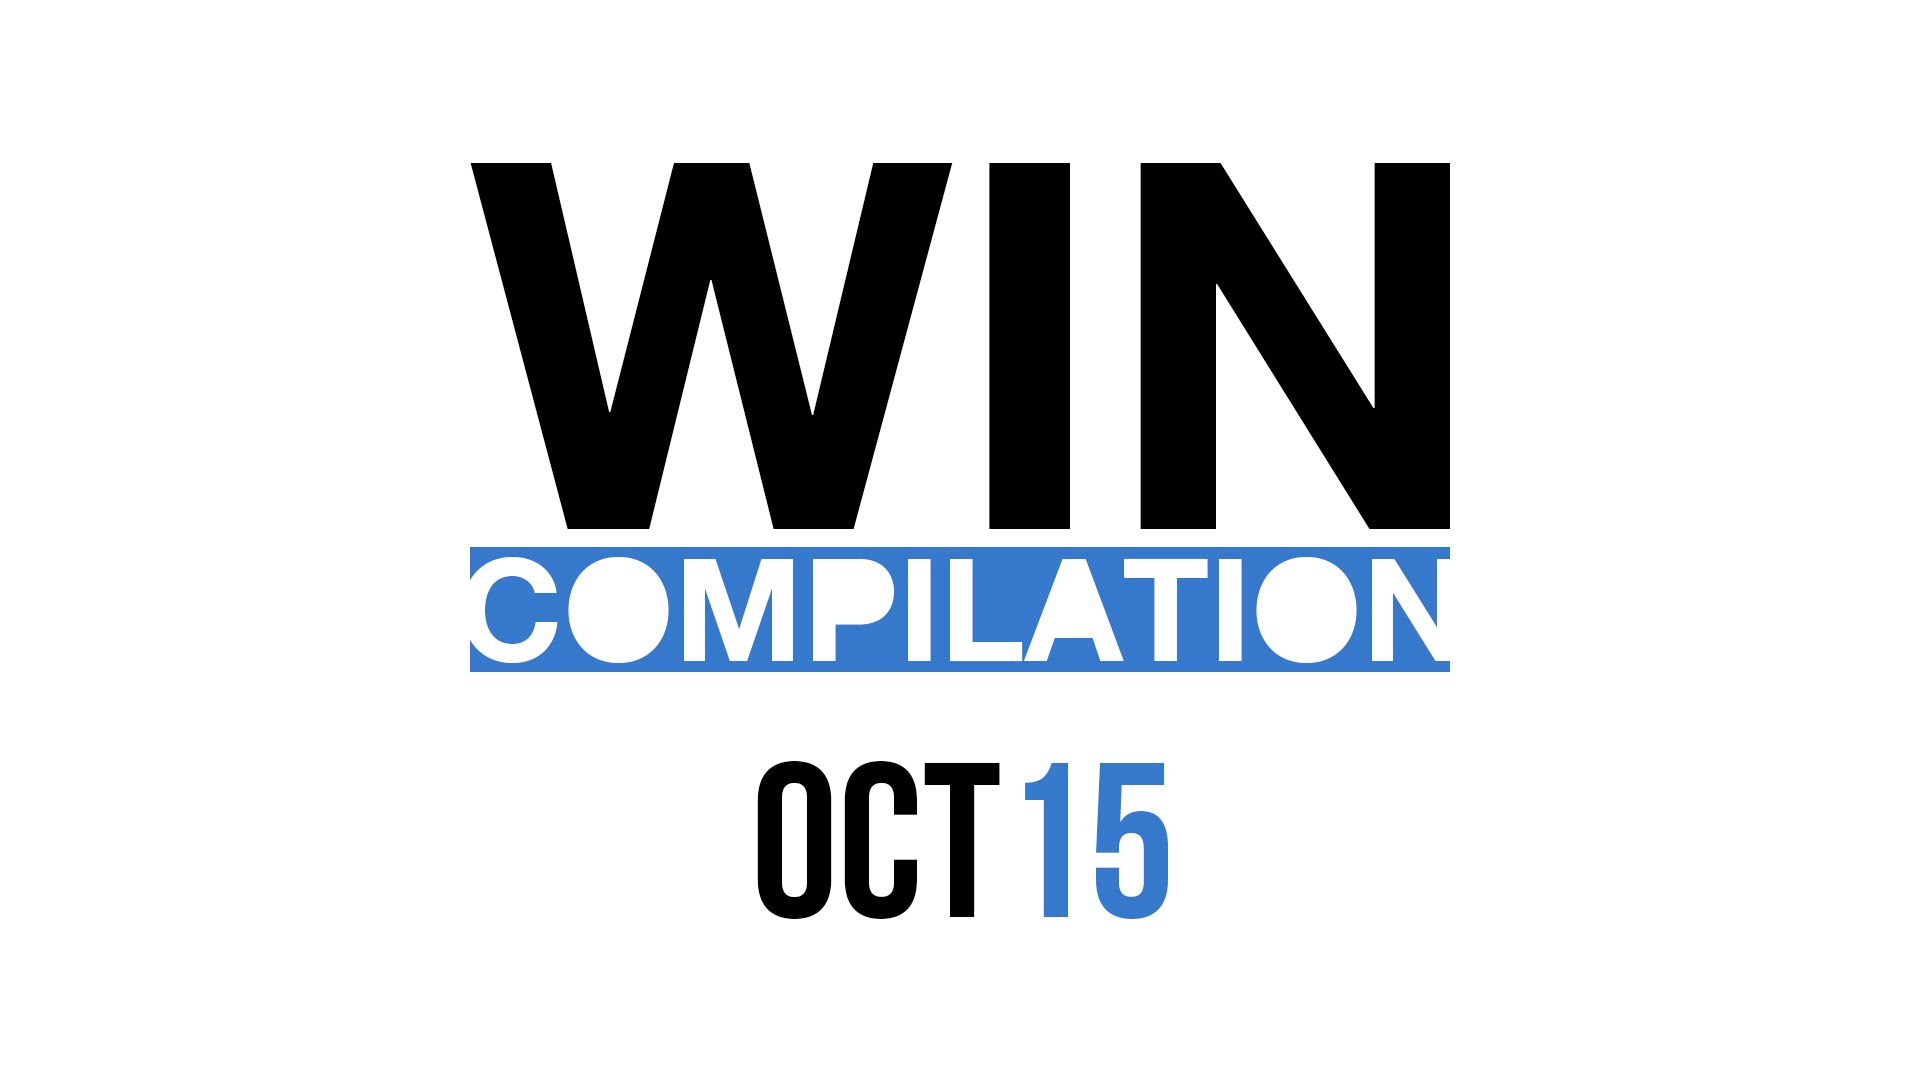 Win-Compilation October 2015